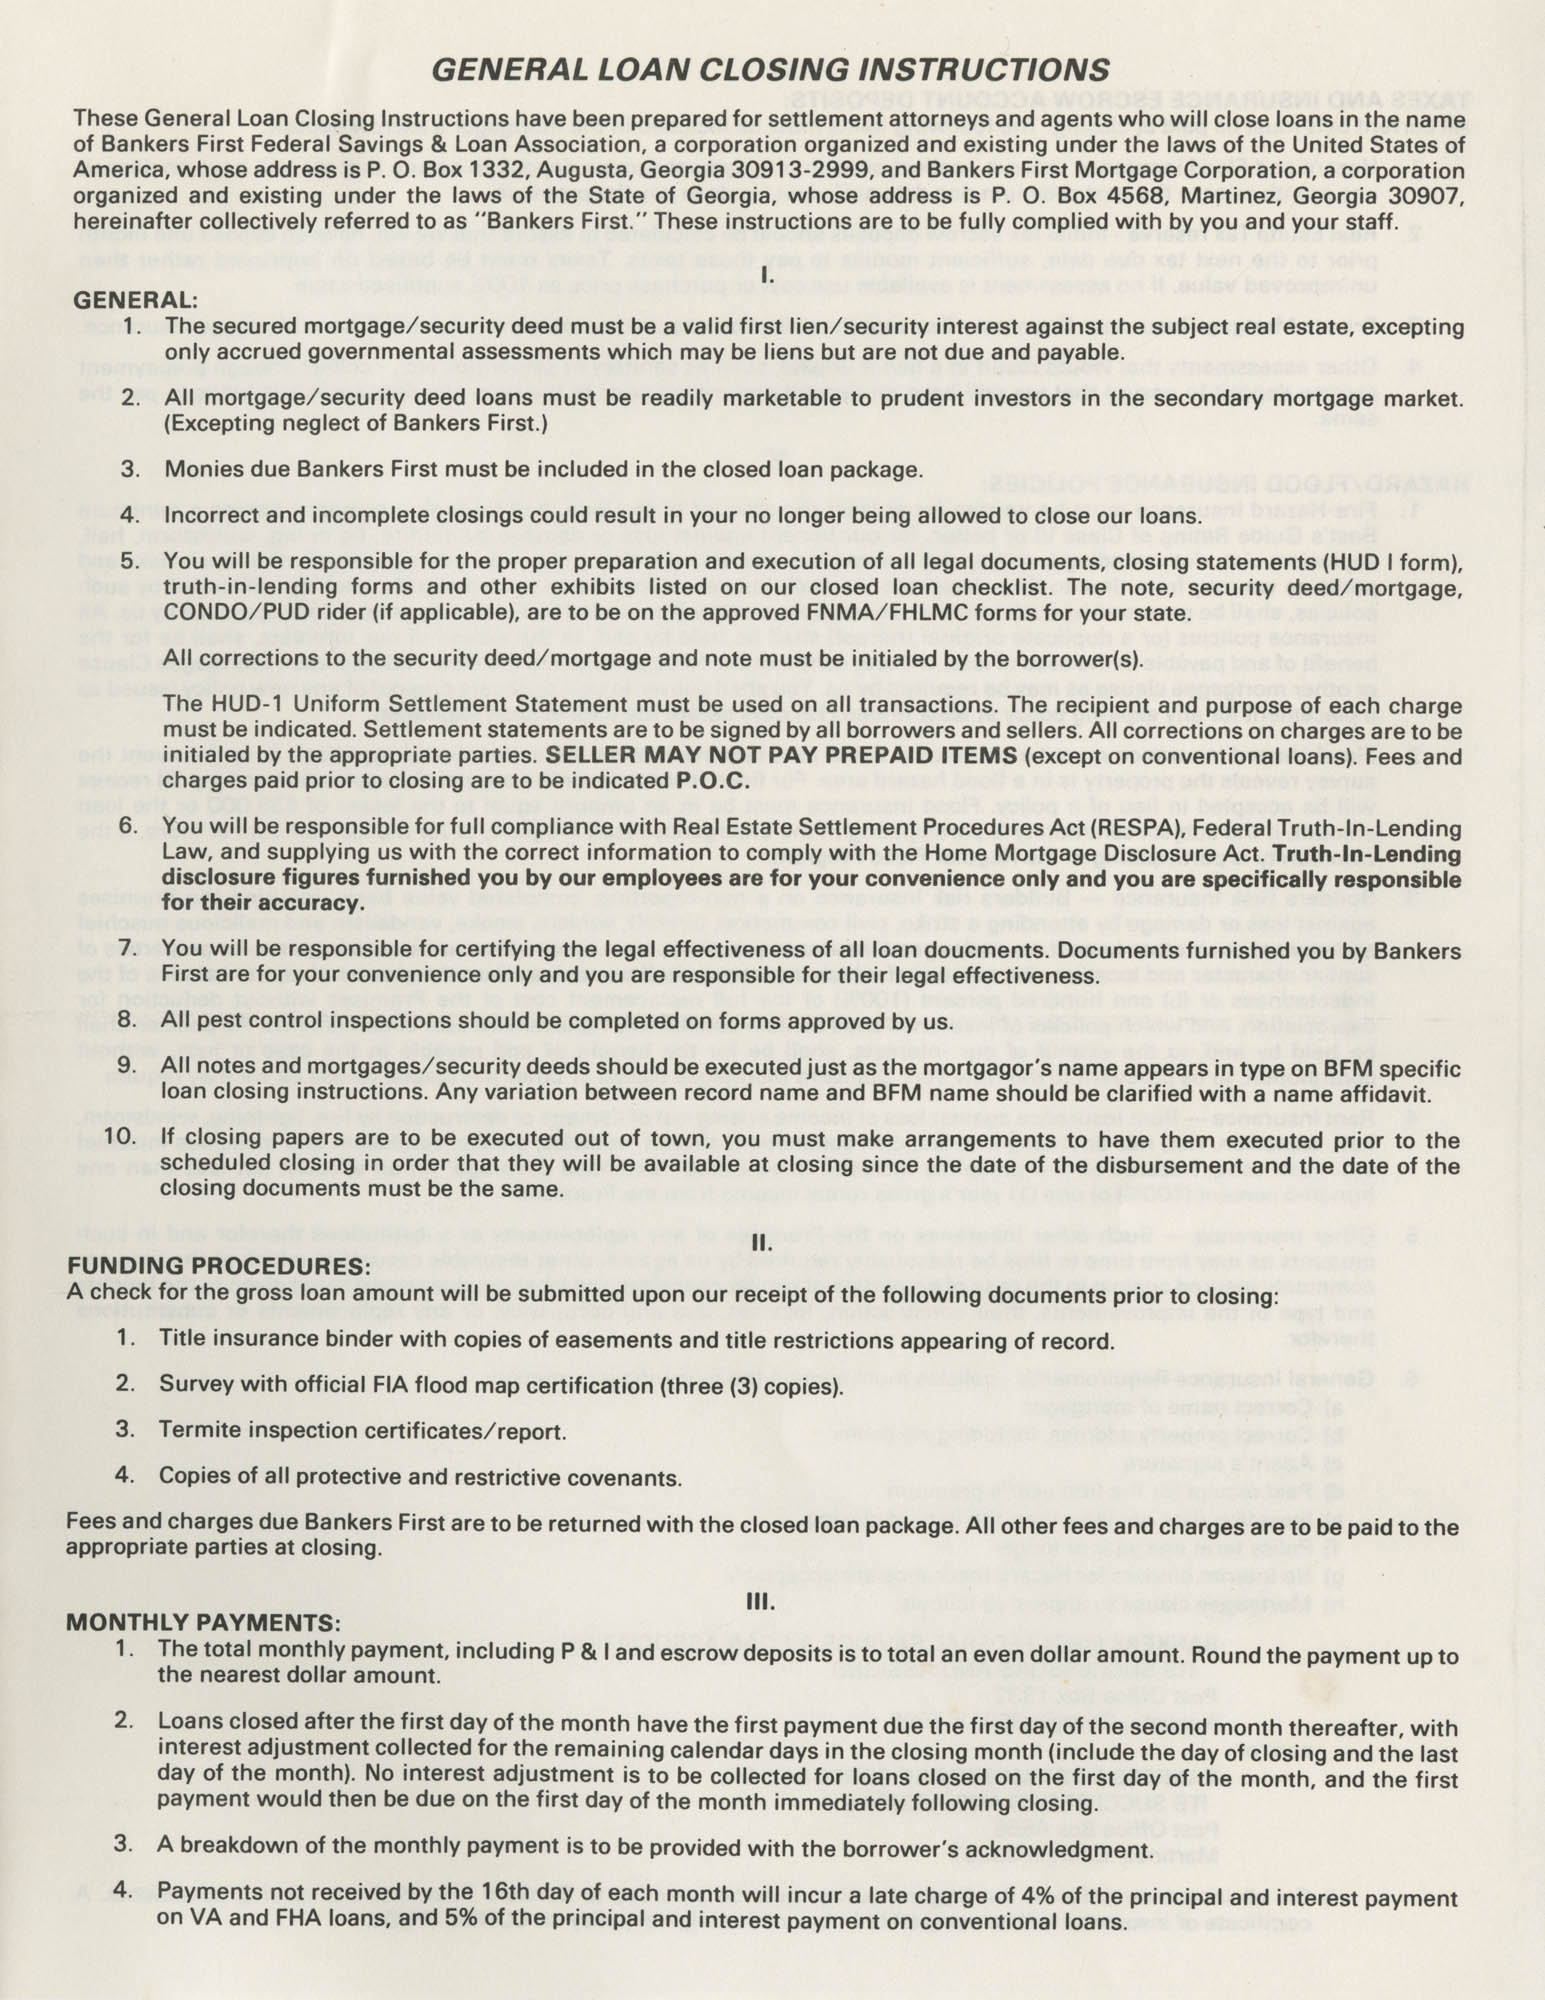 General Loan Closing Instructions, Page 1